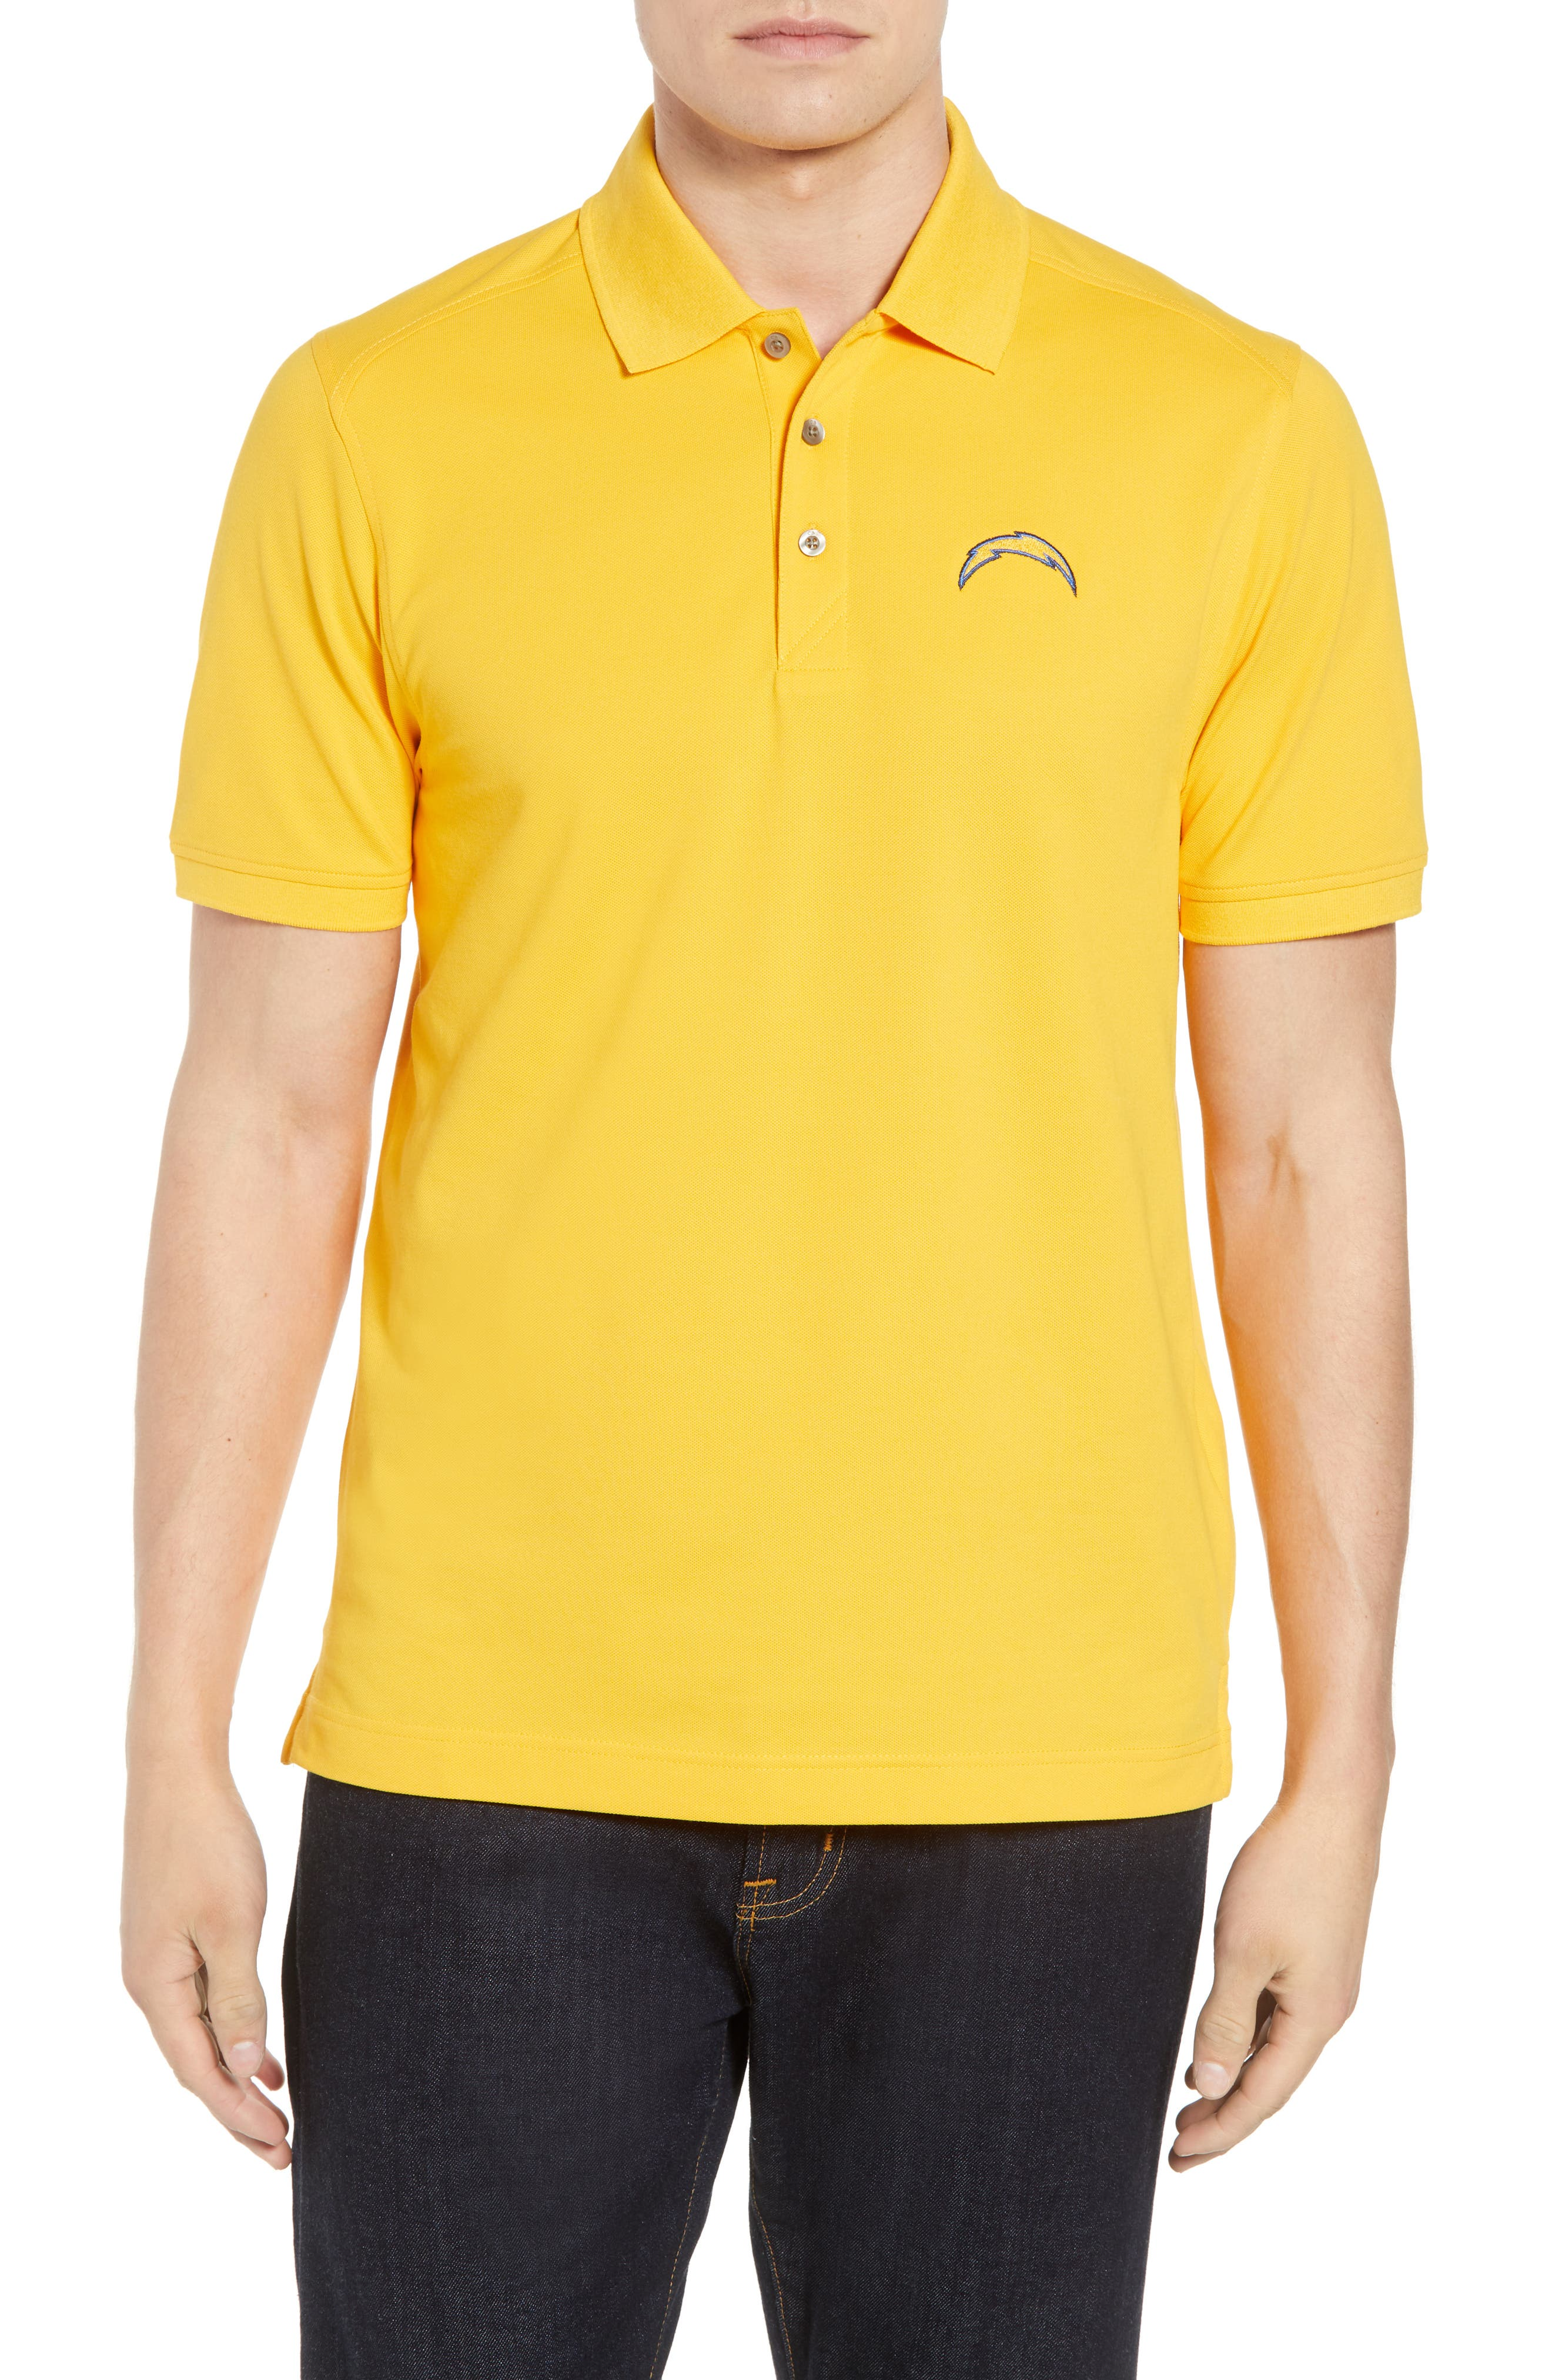 Los Angeles Chargers - Advantage Regular Fit DryTec Polo,                         Main,                         color, COLLEGE GOLD